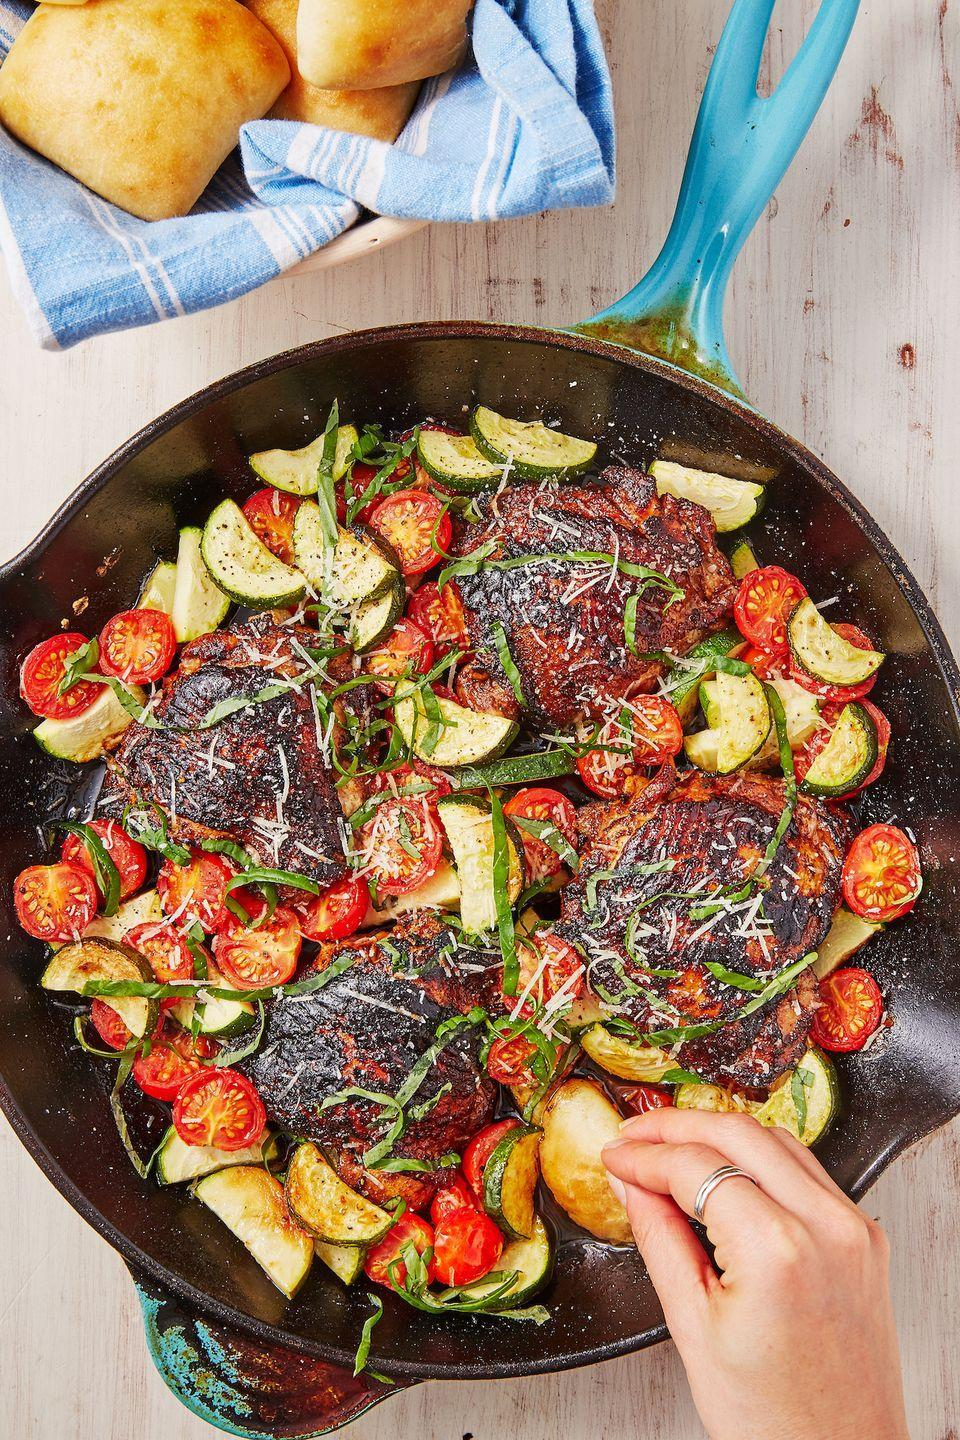 """<p>This is a surefire winner.</p><p>Get the recipe from <a href=""""https://www.delish.com/cooking/recipe-ideas/a22607407/balsamic-basil-chicken-recipe/"""" rel=""""nofollow noopener"""" target=""""_blank"""" data-ylk=""""slk:Delish"""" class=""""link rapid-noclick-resp"""">Delish</a>.</p>"""